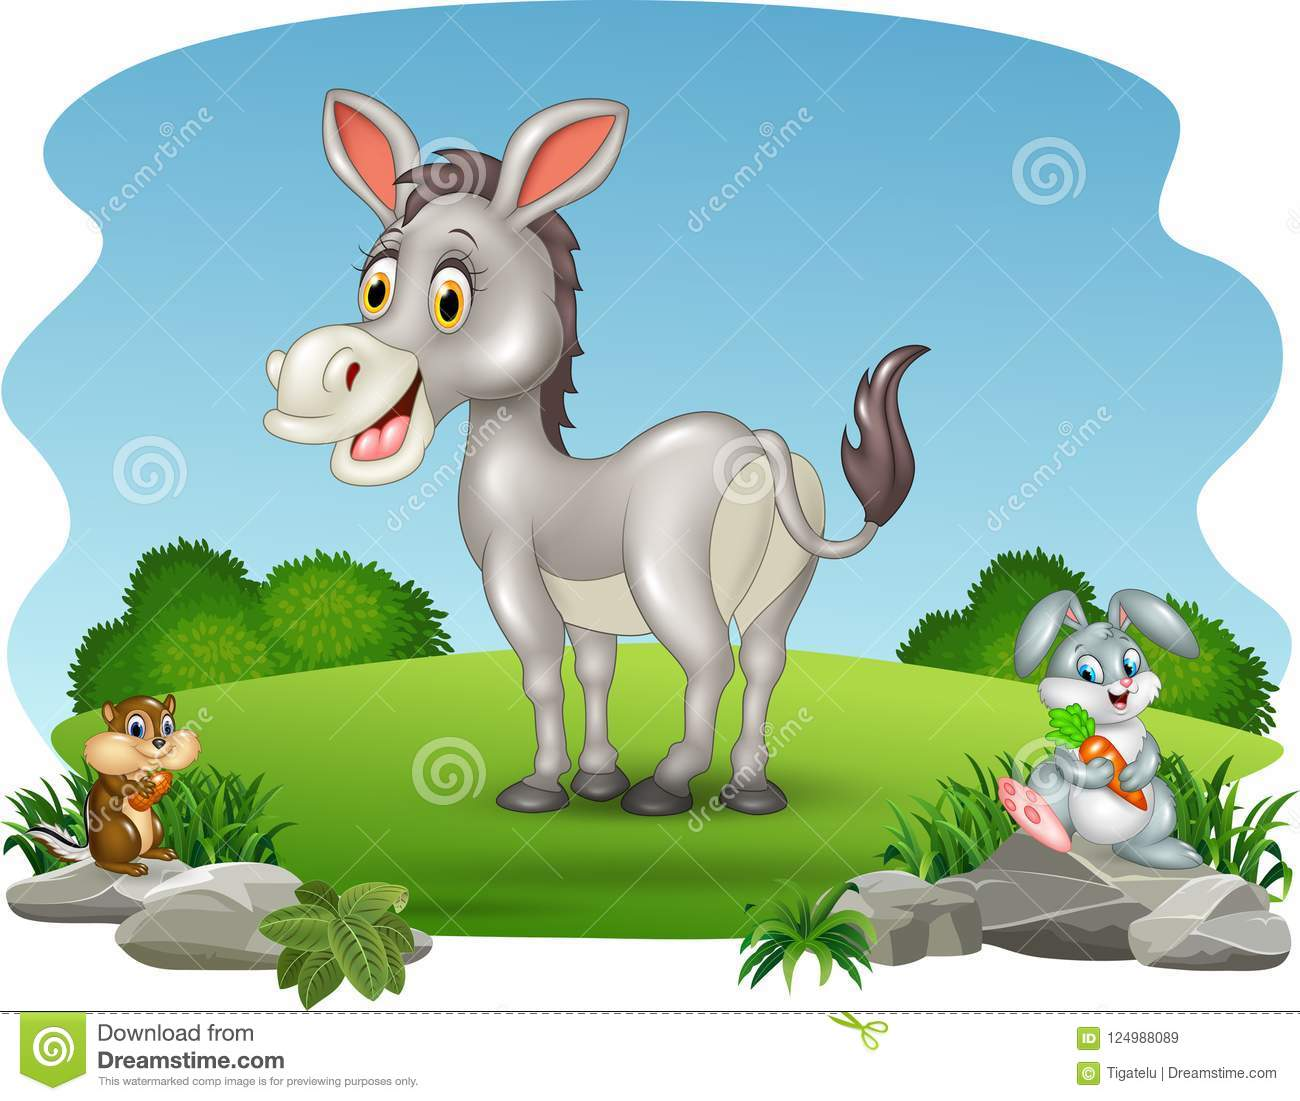 Cartoon funny donkey with nature background